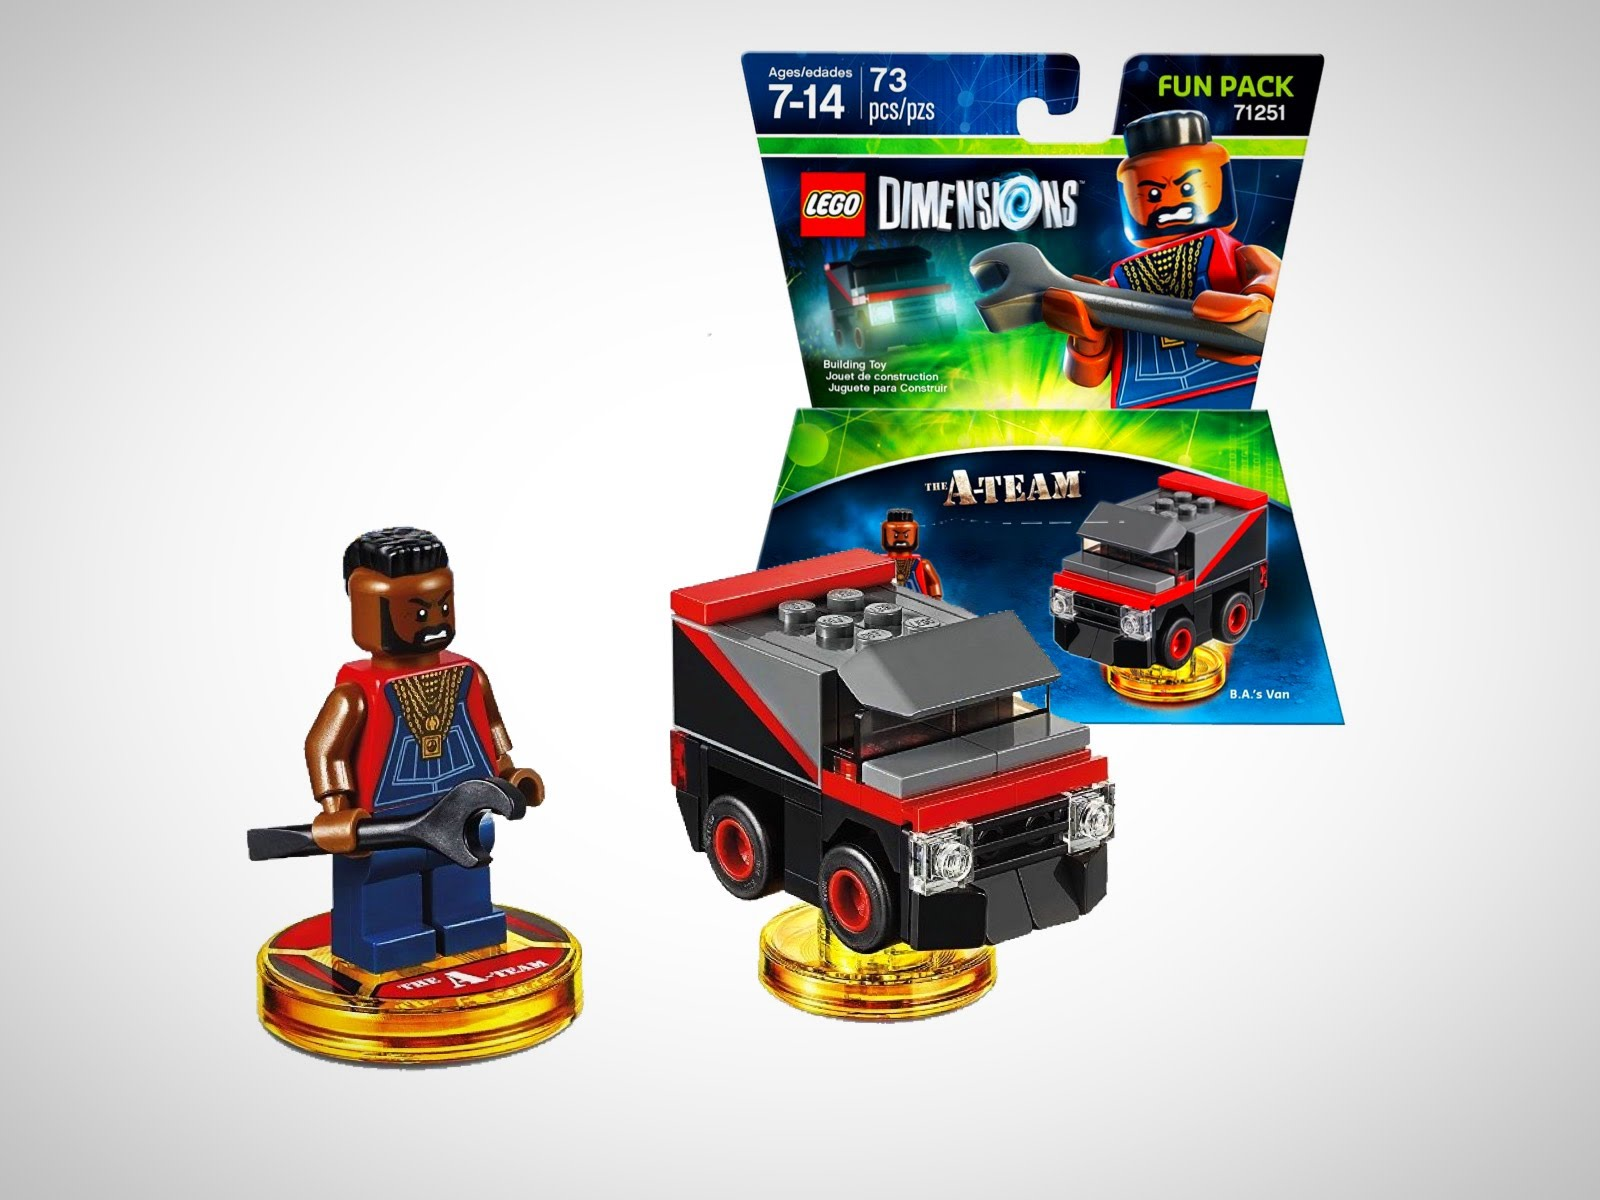 Lego Dimensions Fun Pack (71251)